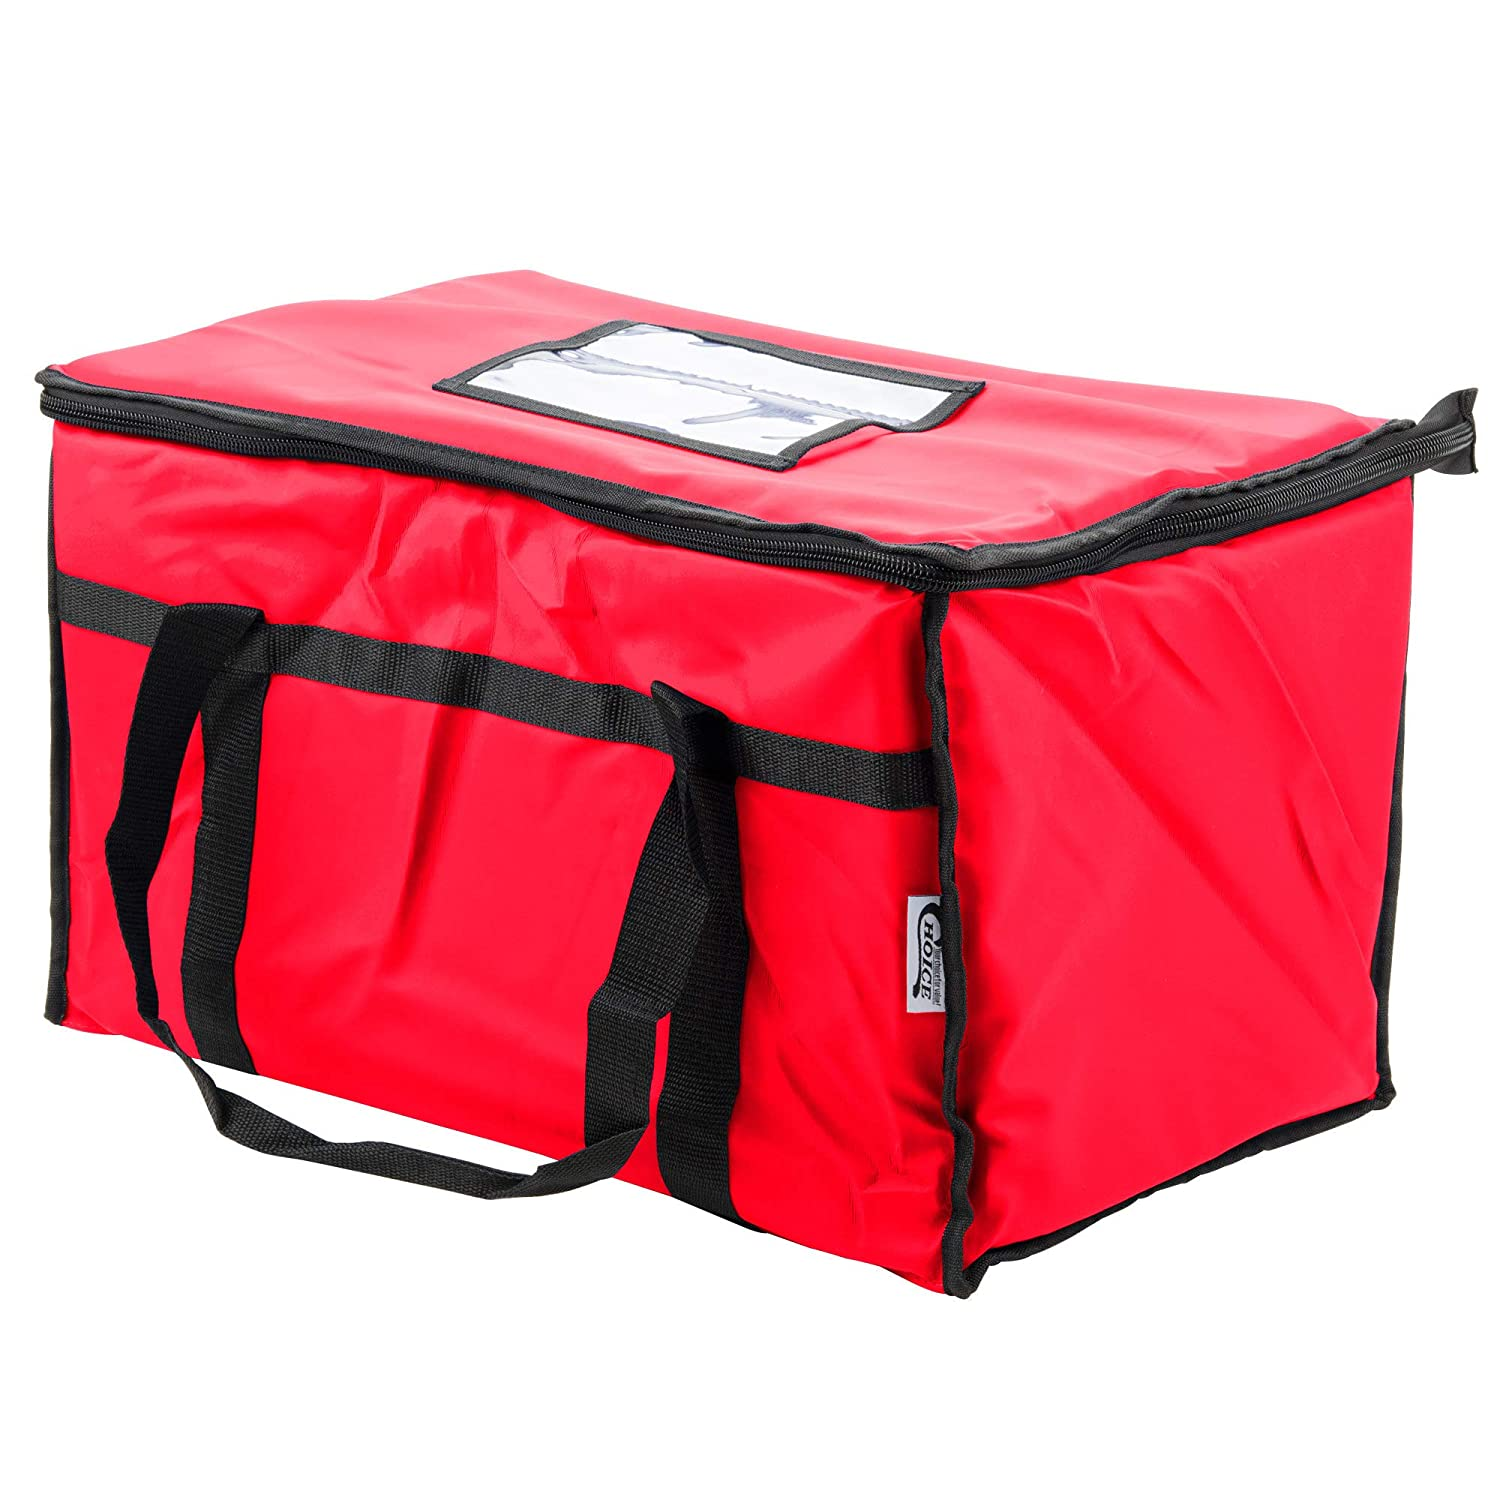 Heavy-Duty Insulated Red Nylon Soft-Sided Food Delivery Bag, Warm and Cool, Buffet Server, Warming Tray, Lunch Container Store - Pizza Box, Chafing Dish, and Pan Carrier, 22